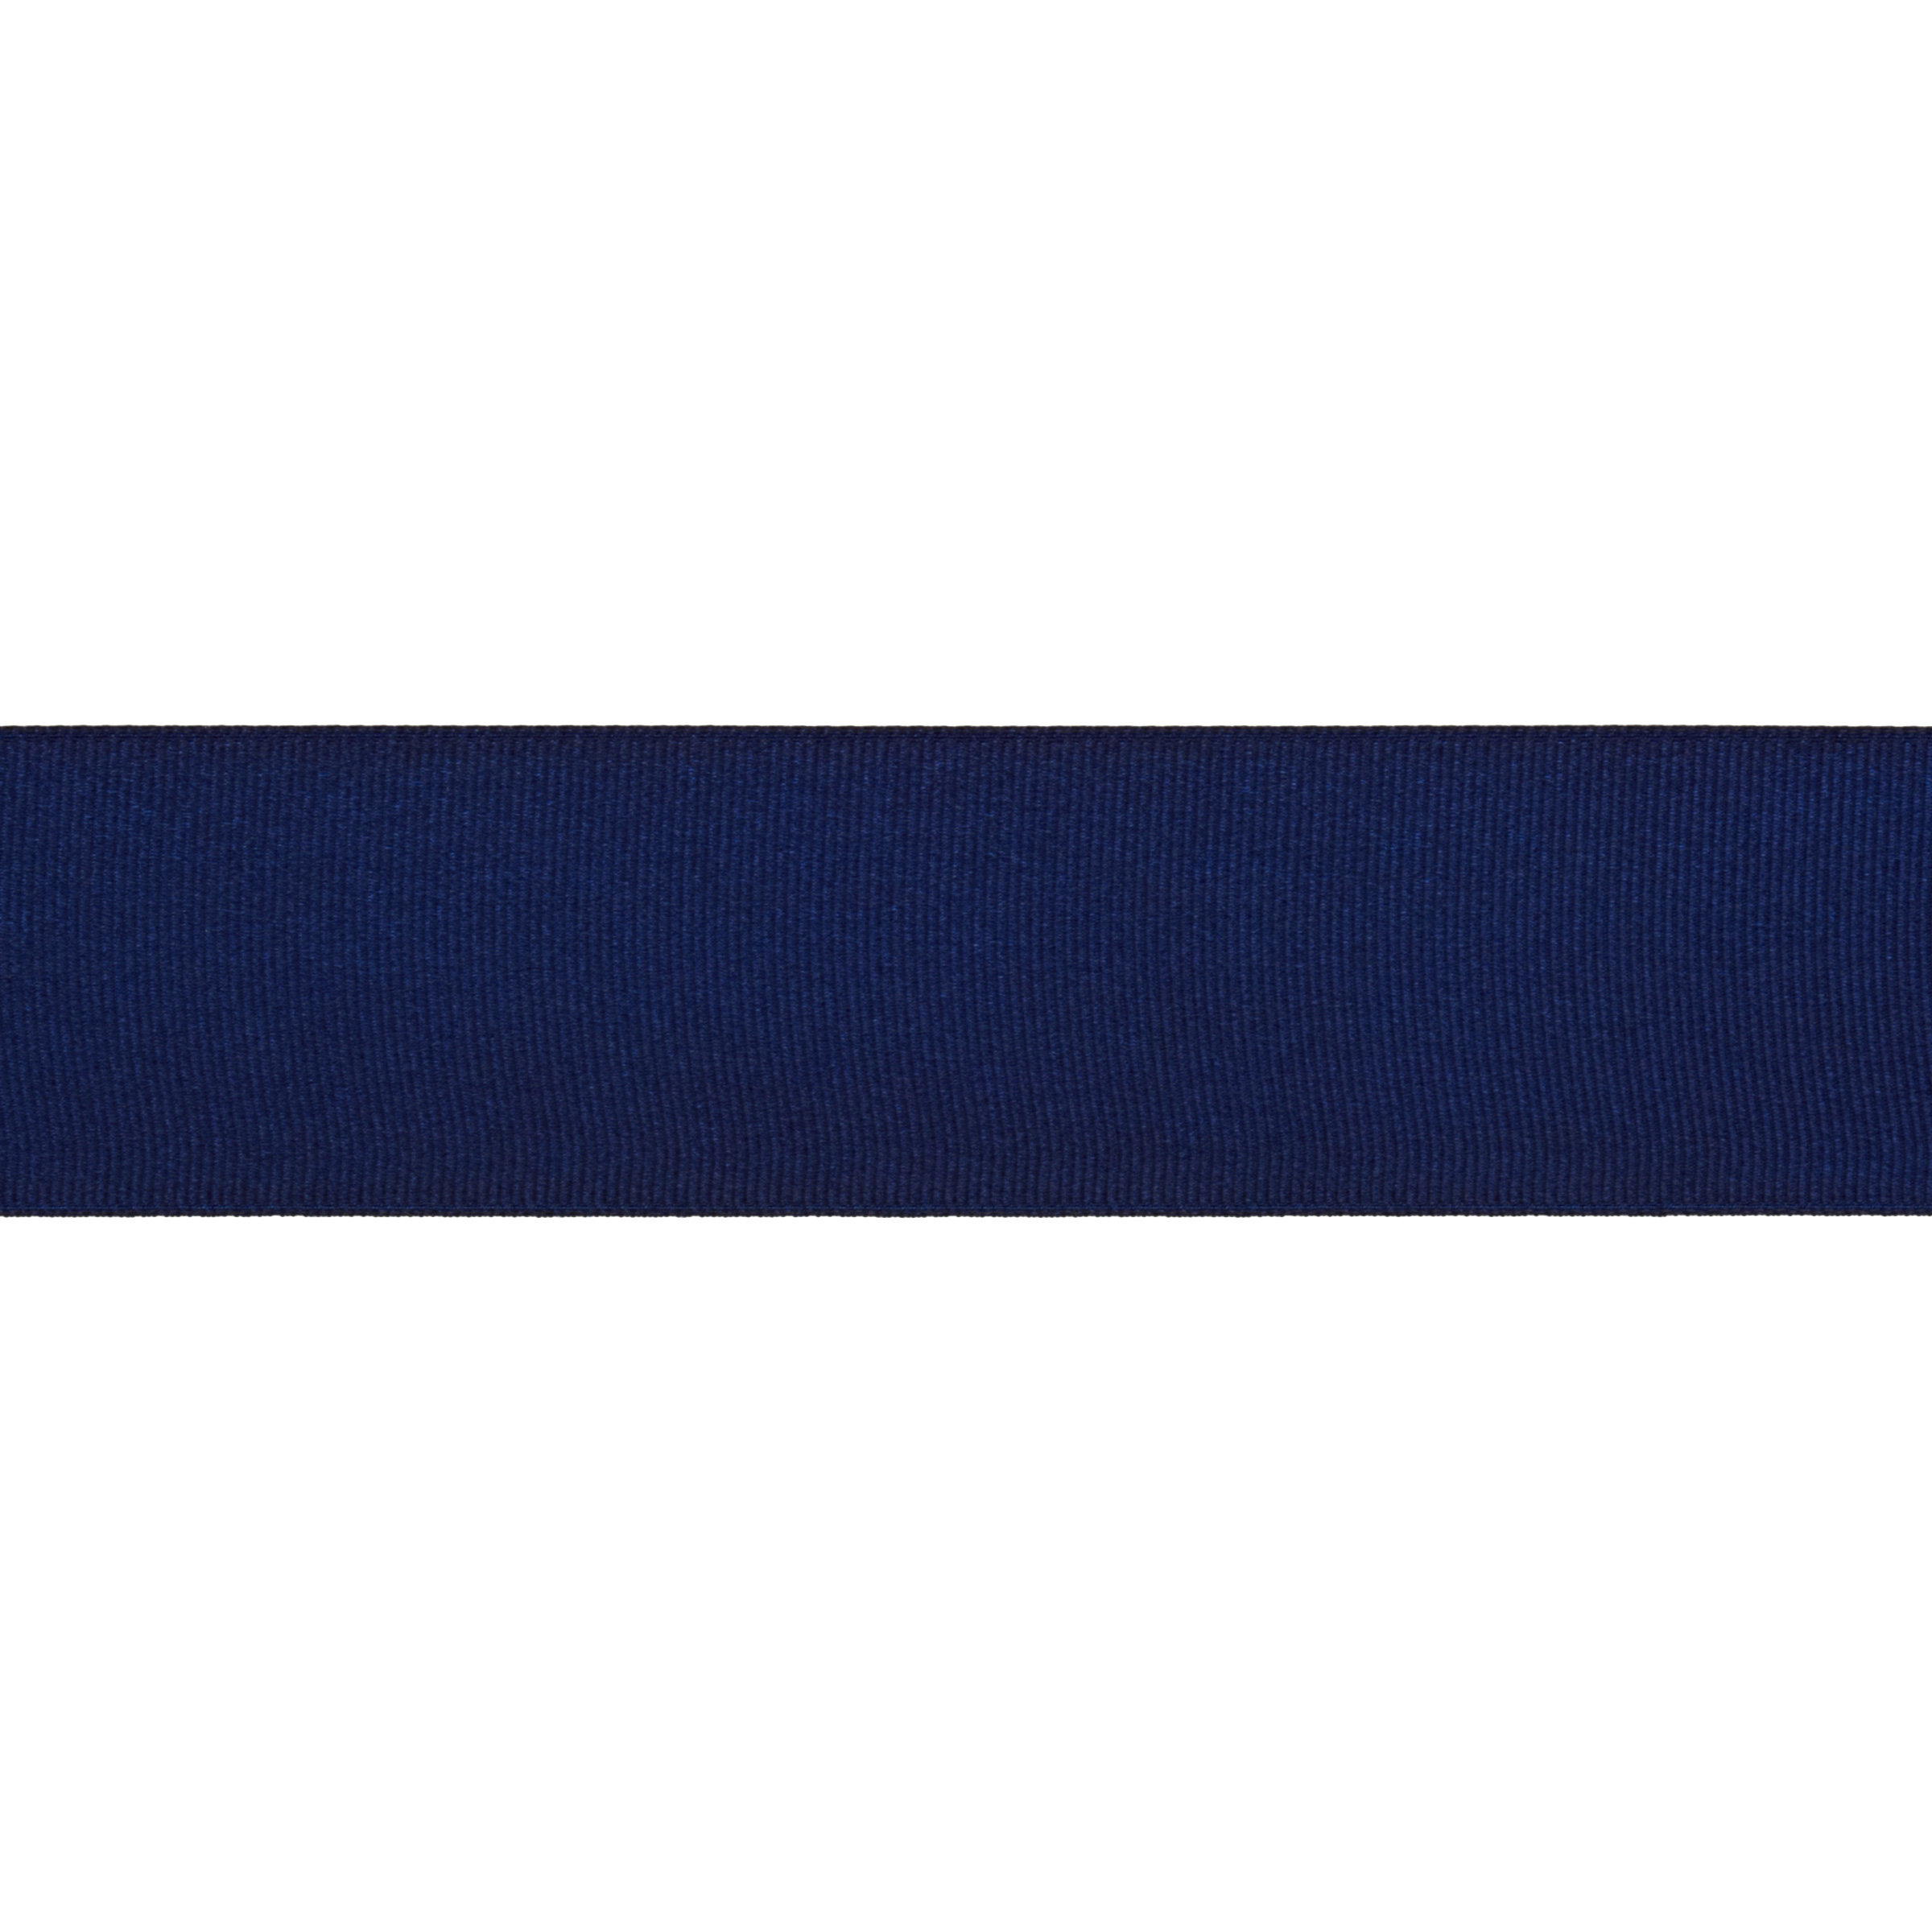 1 1/2'' Grosgrain Ribbon Navy Fabric